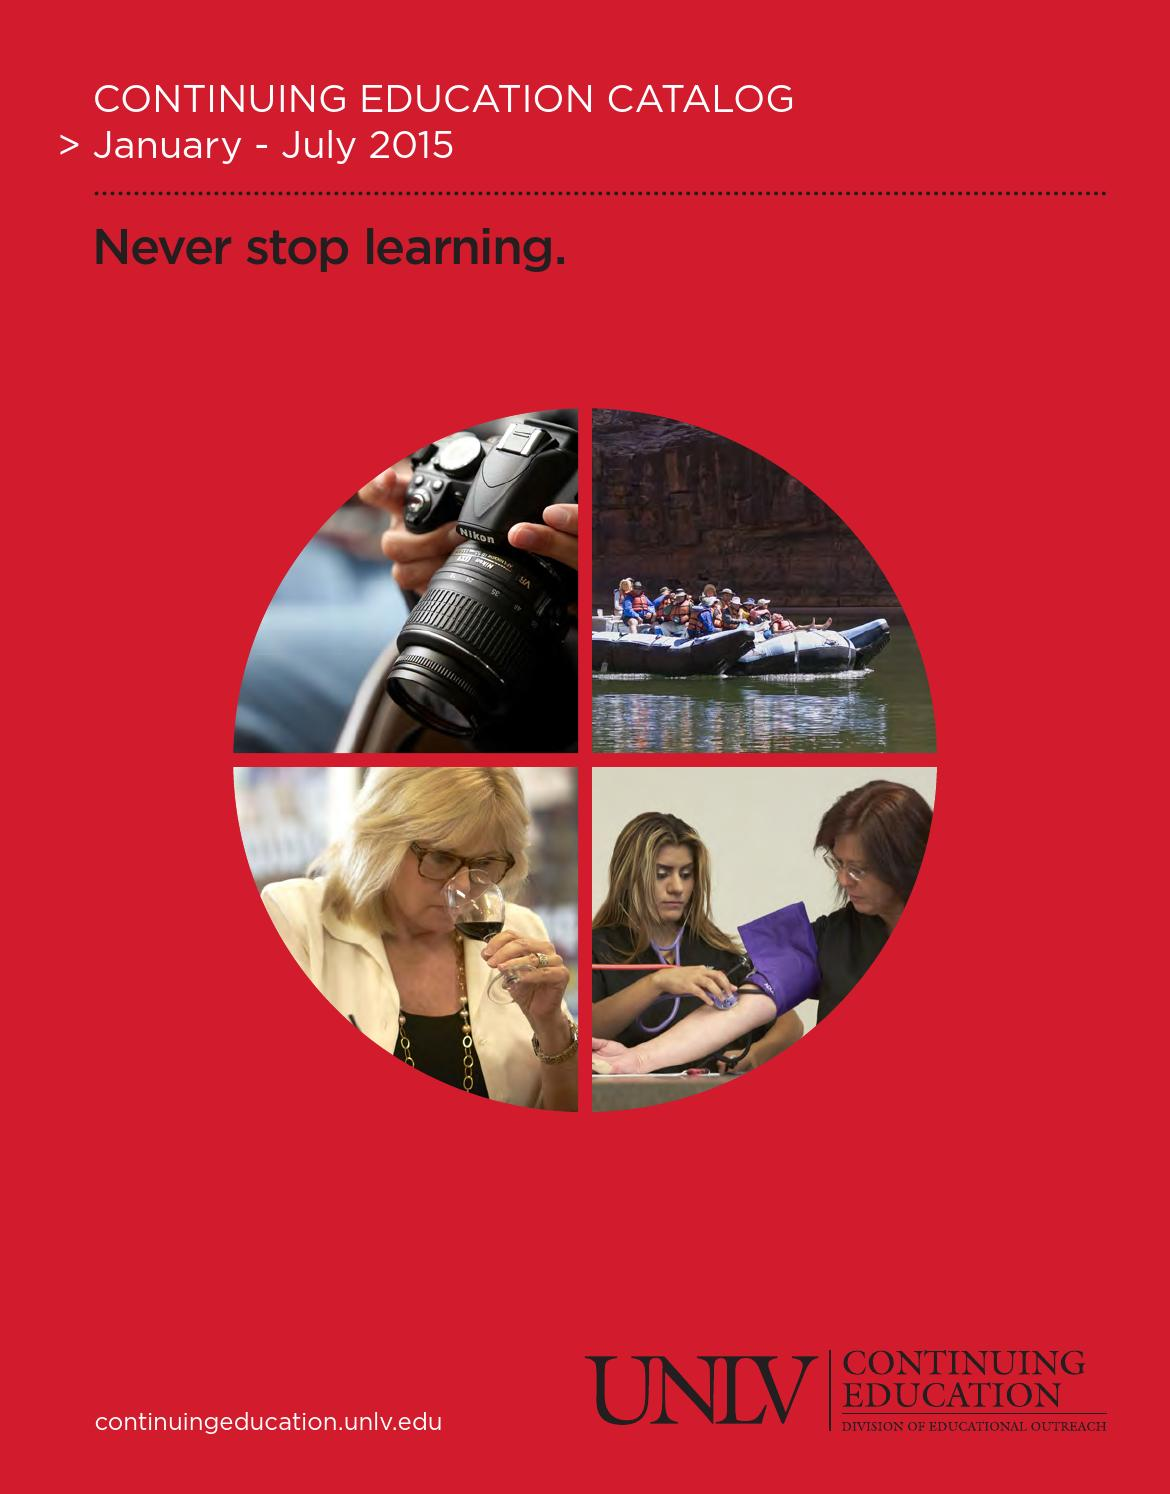 Unlv Continuing Education Catalog Jan July 2015 By Unlv Division Of Educational Outreach Issuu Sell textbooks back for cash! issuu